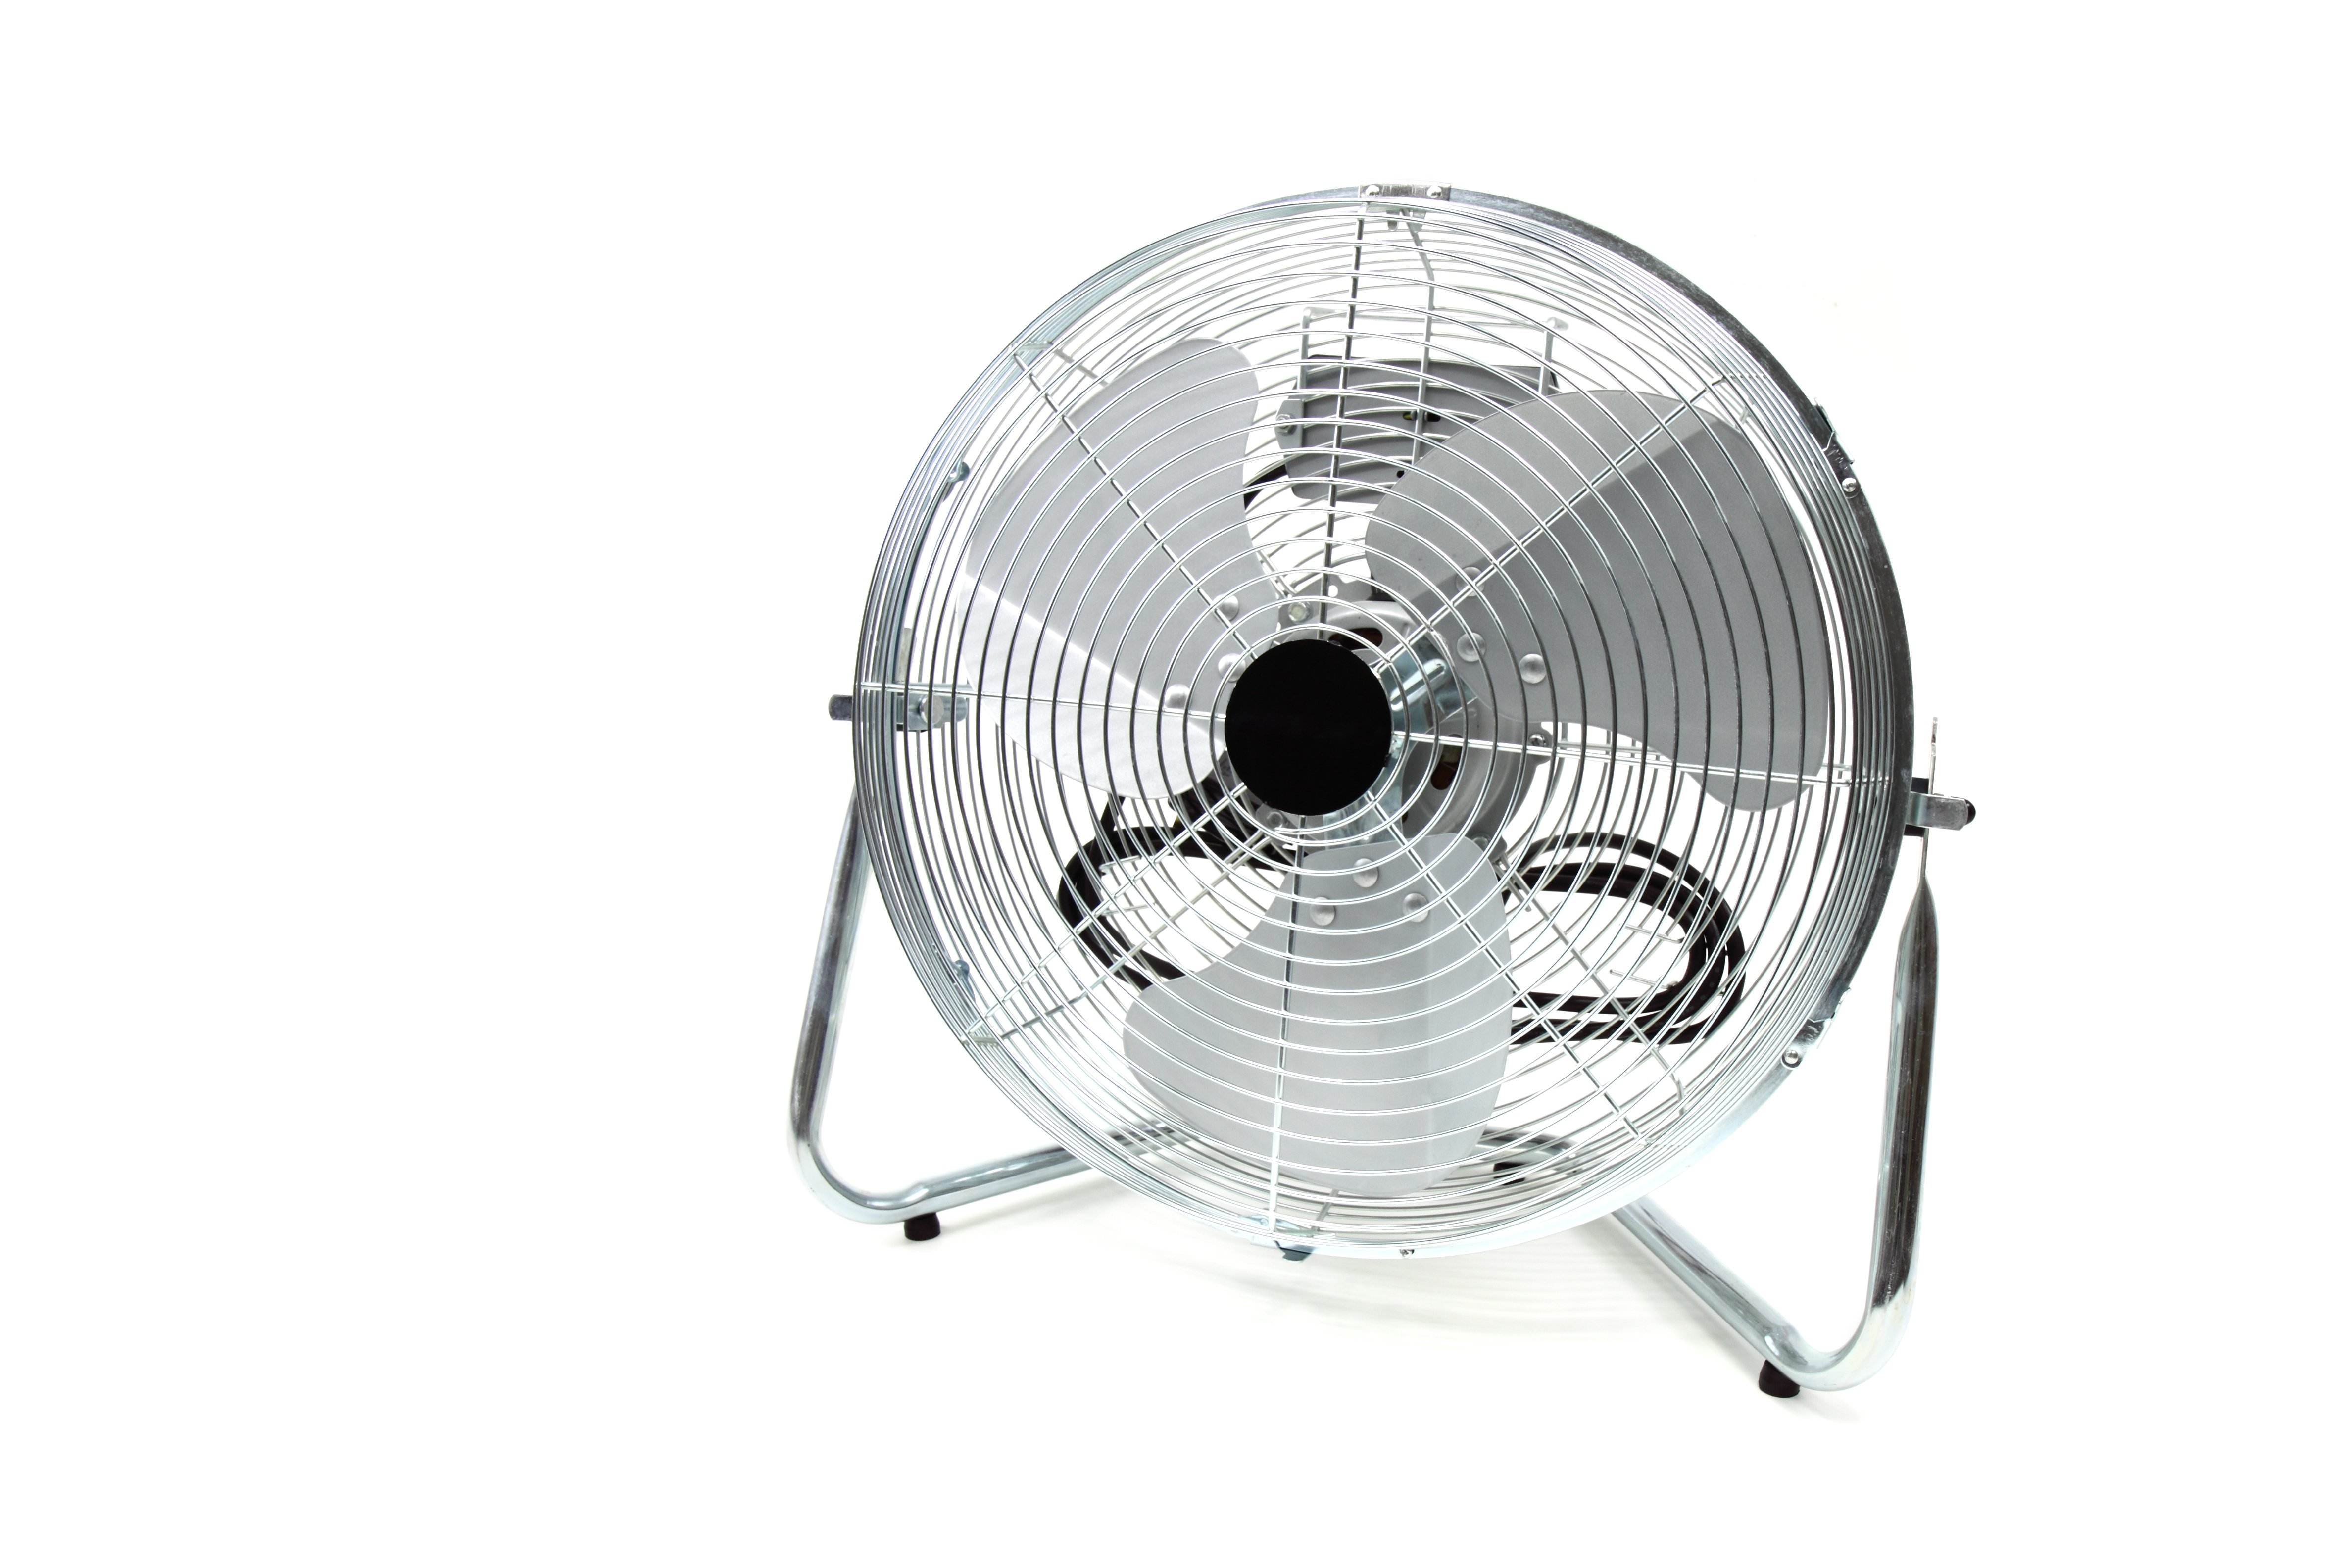 Wall Fan, Air, Blow, Fan, Object, HQ Photo